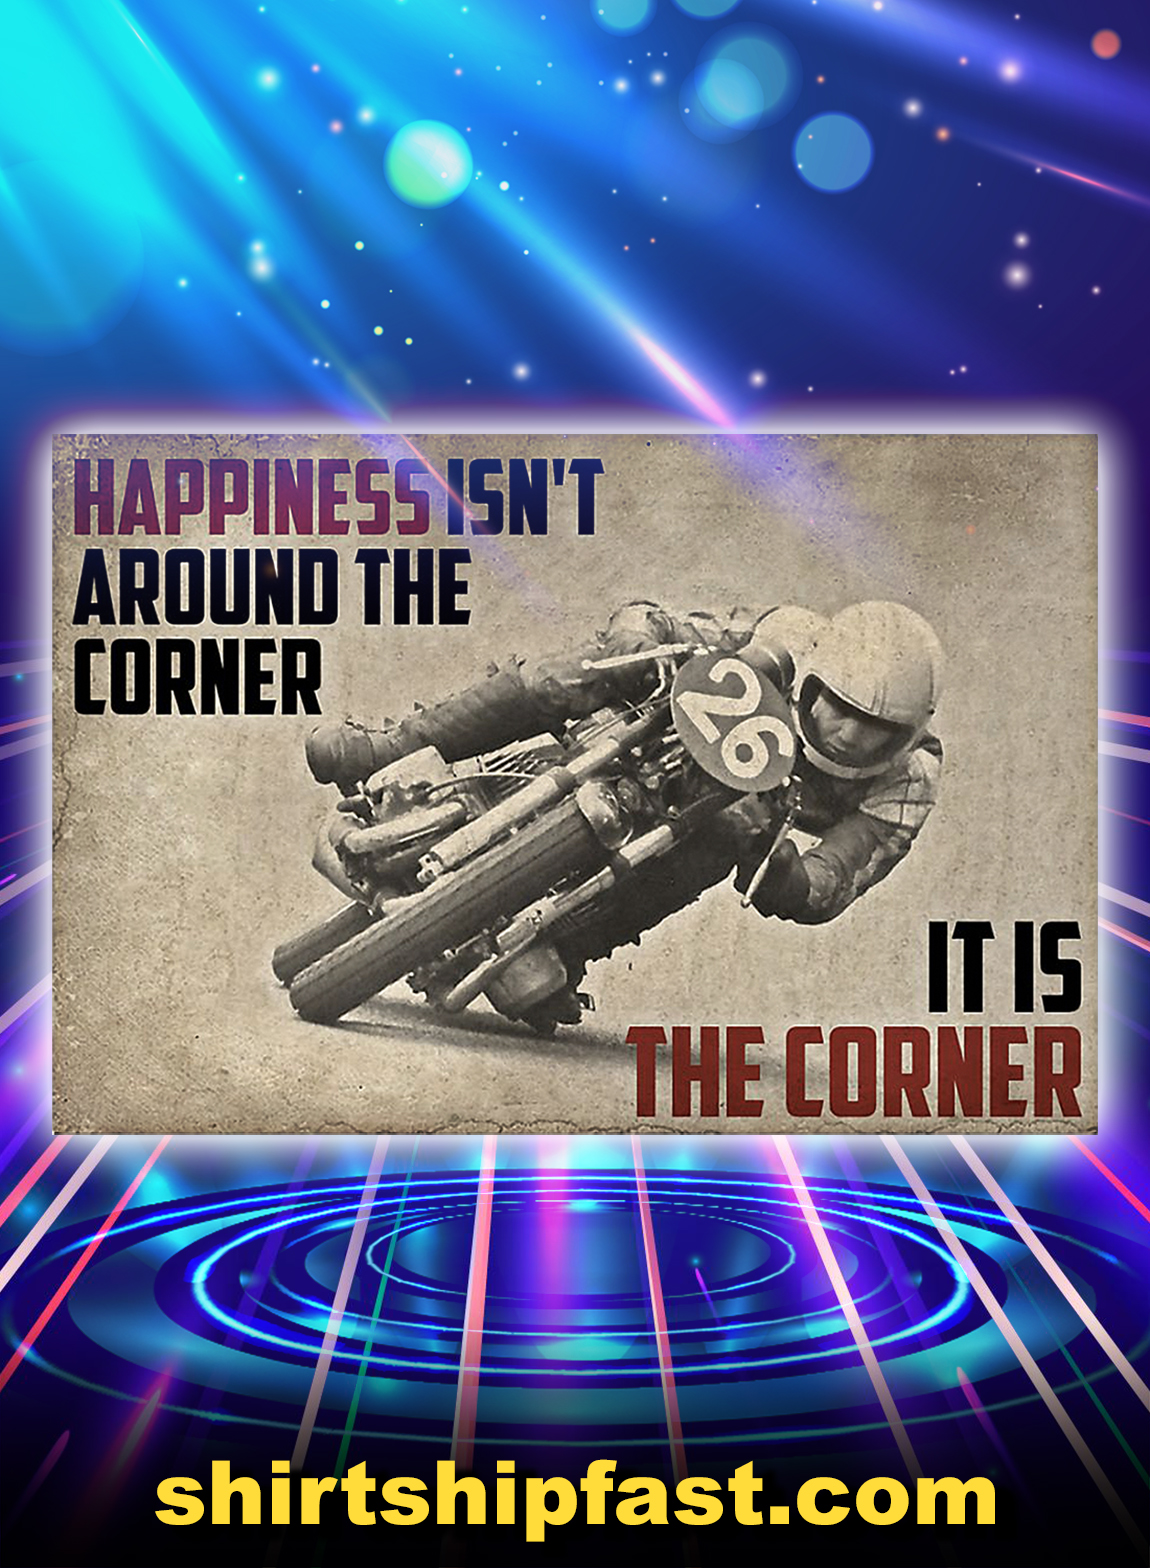 Motorcycle happiness isn't around the corner poster - A1